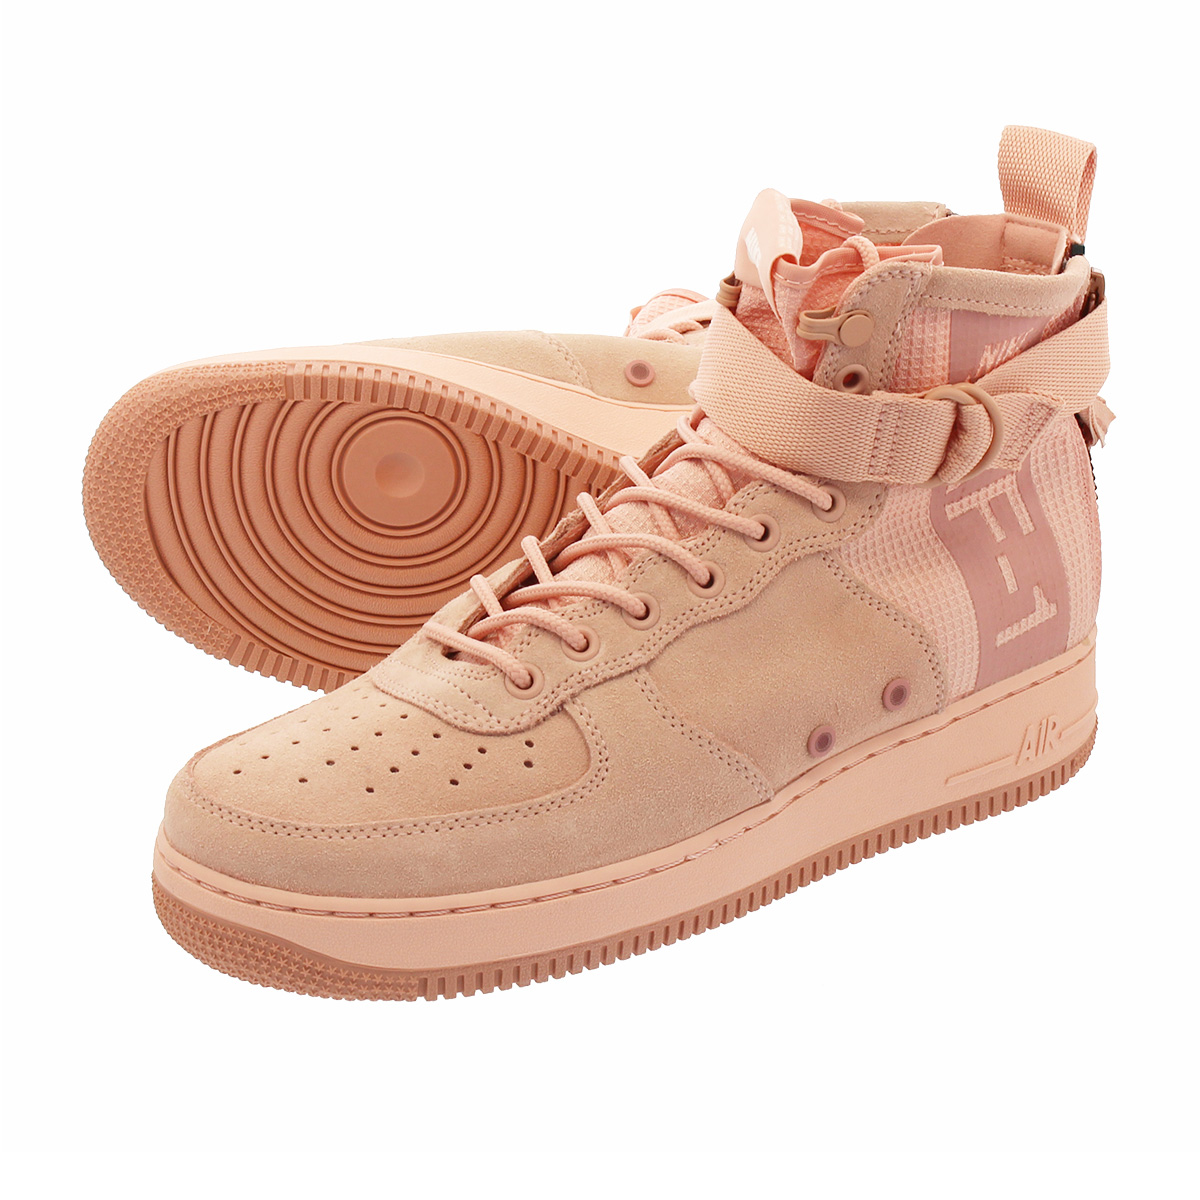 innovative design classic styles stable quality NIKE SPECIAL FIELD AIR FORCE 1 MID SUEDE Nike special field air force 1 mid  suede CORAL STARDUST/RED STARDUST